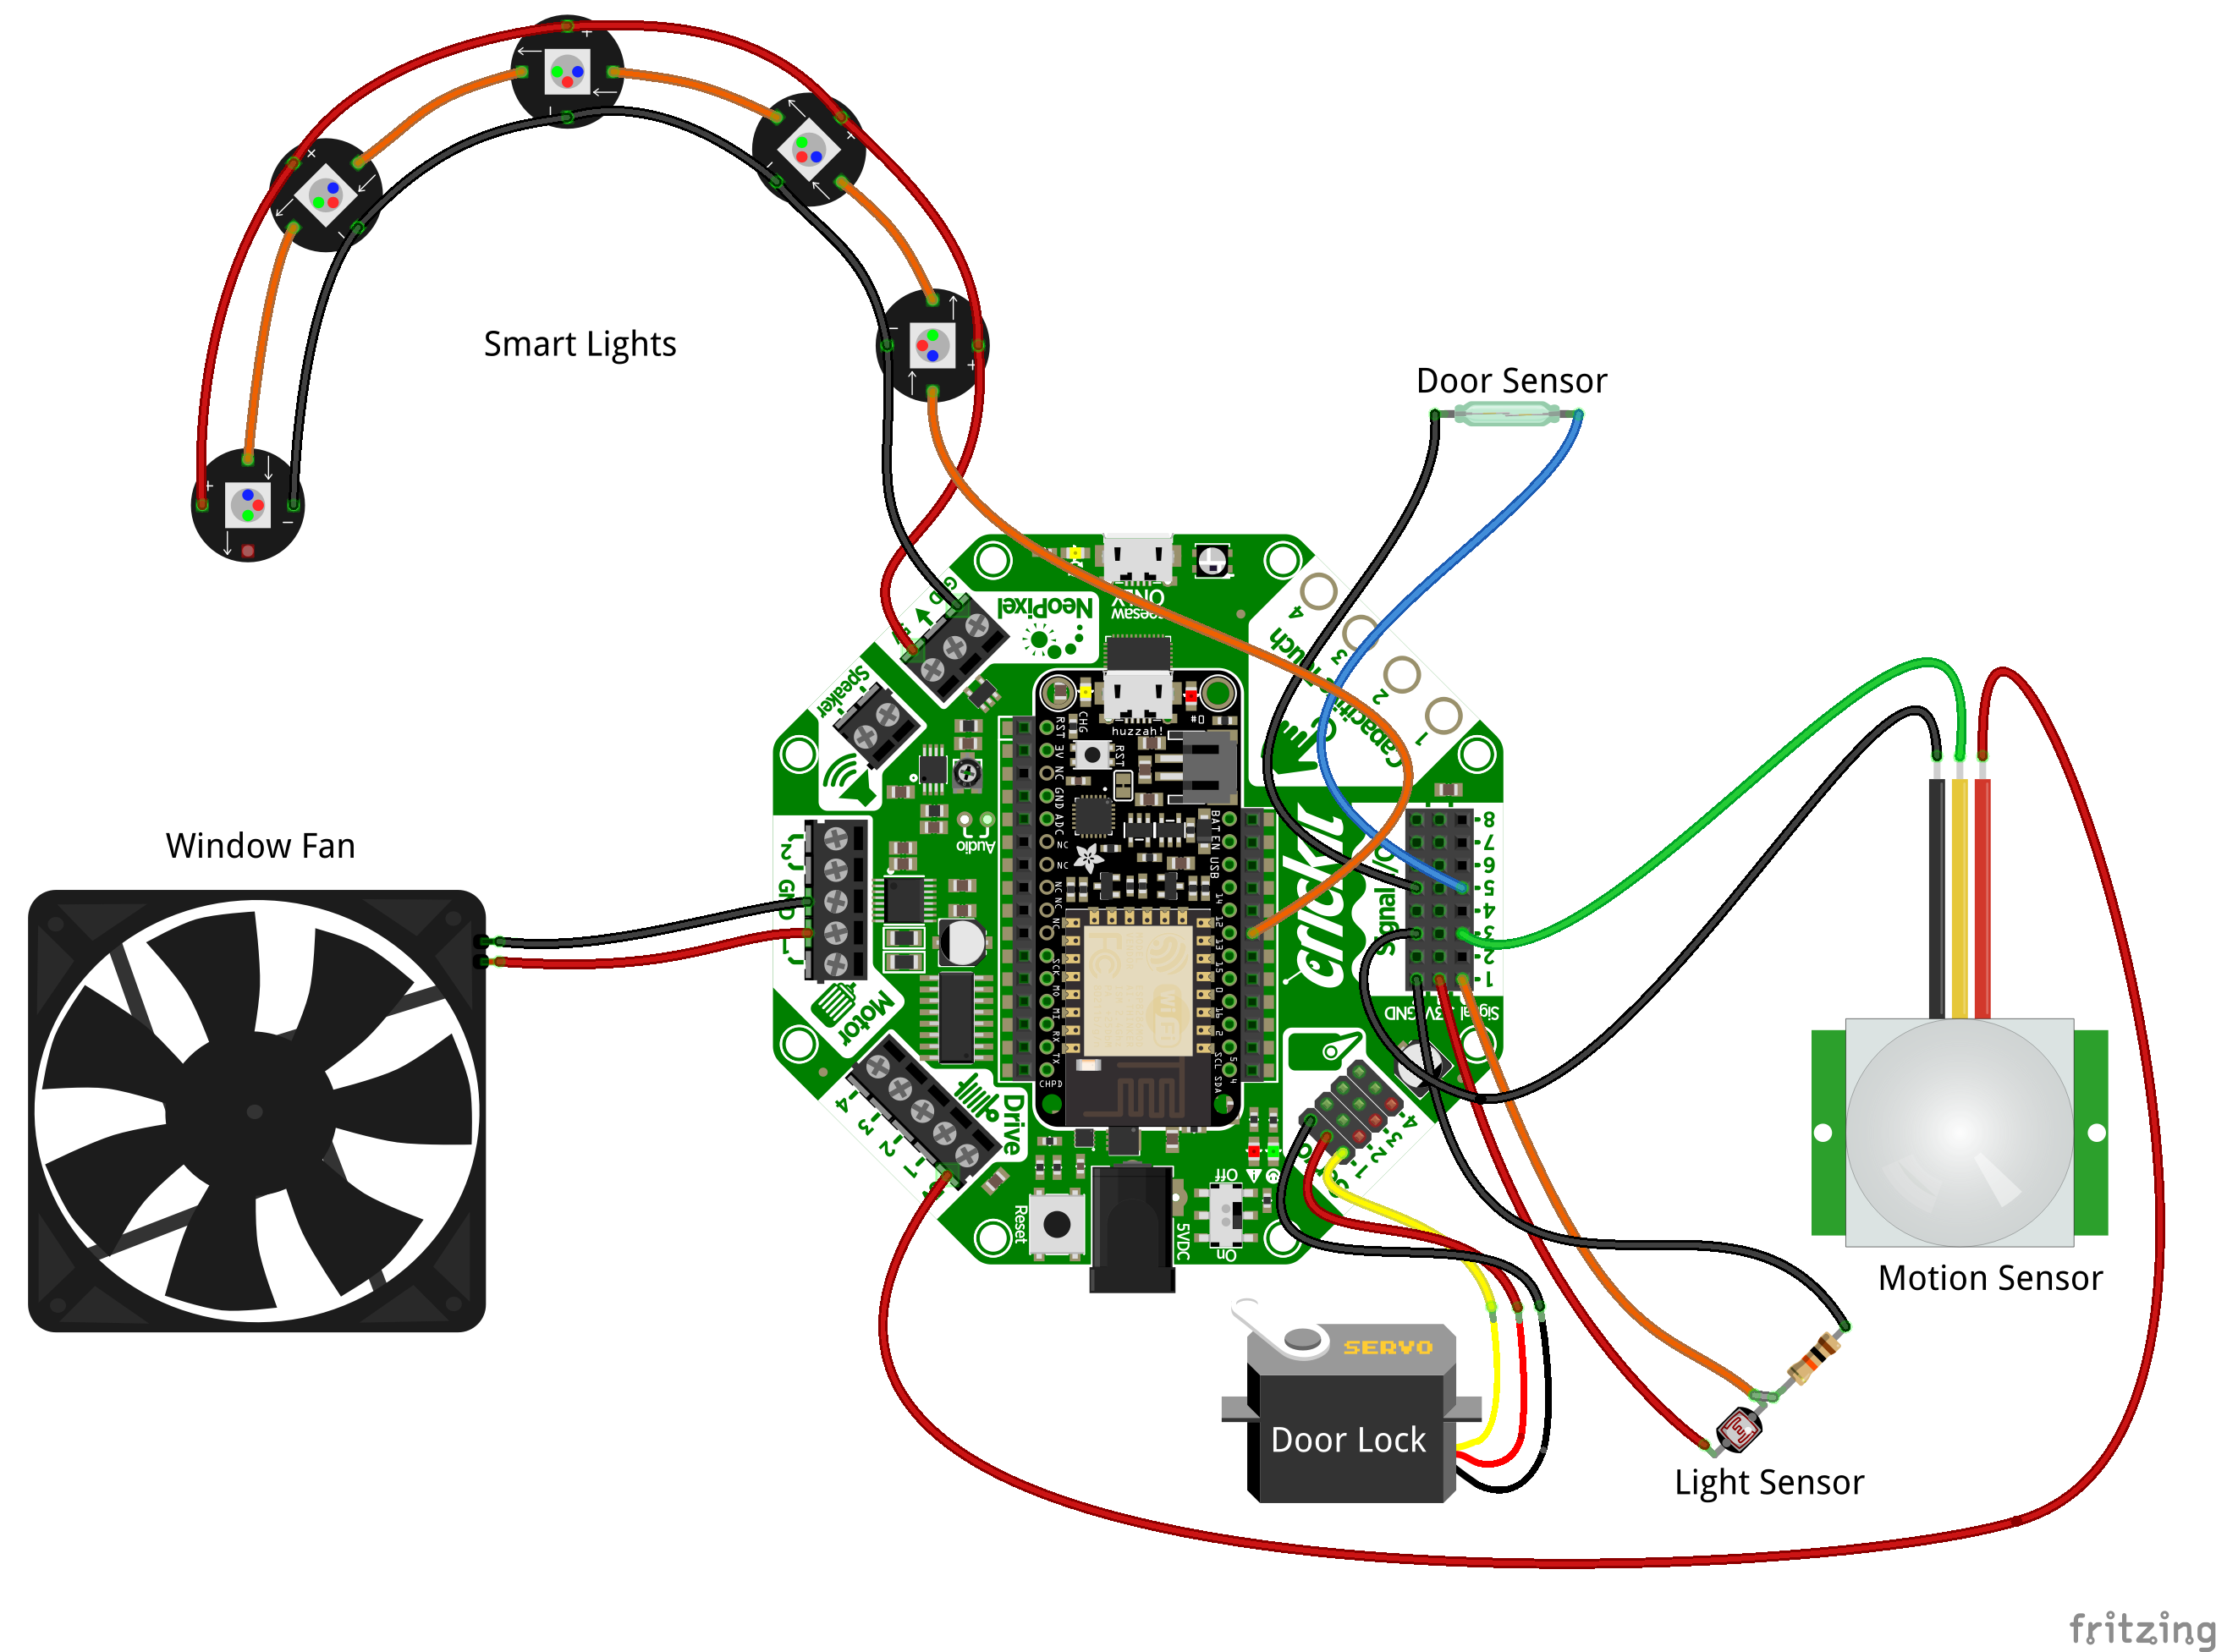 internet_of_things___iot_Crickit_IOT_Wires.png